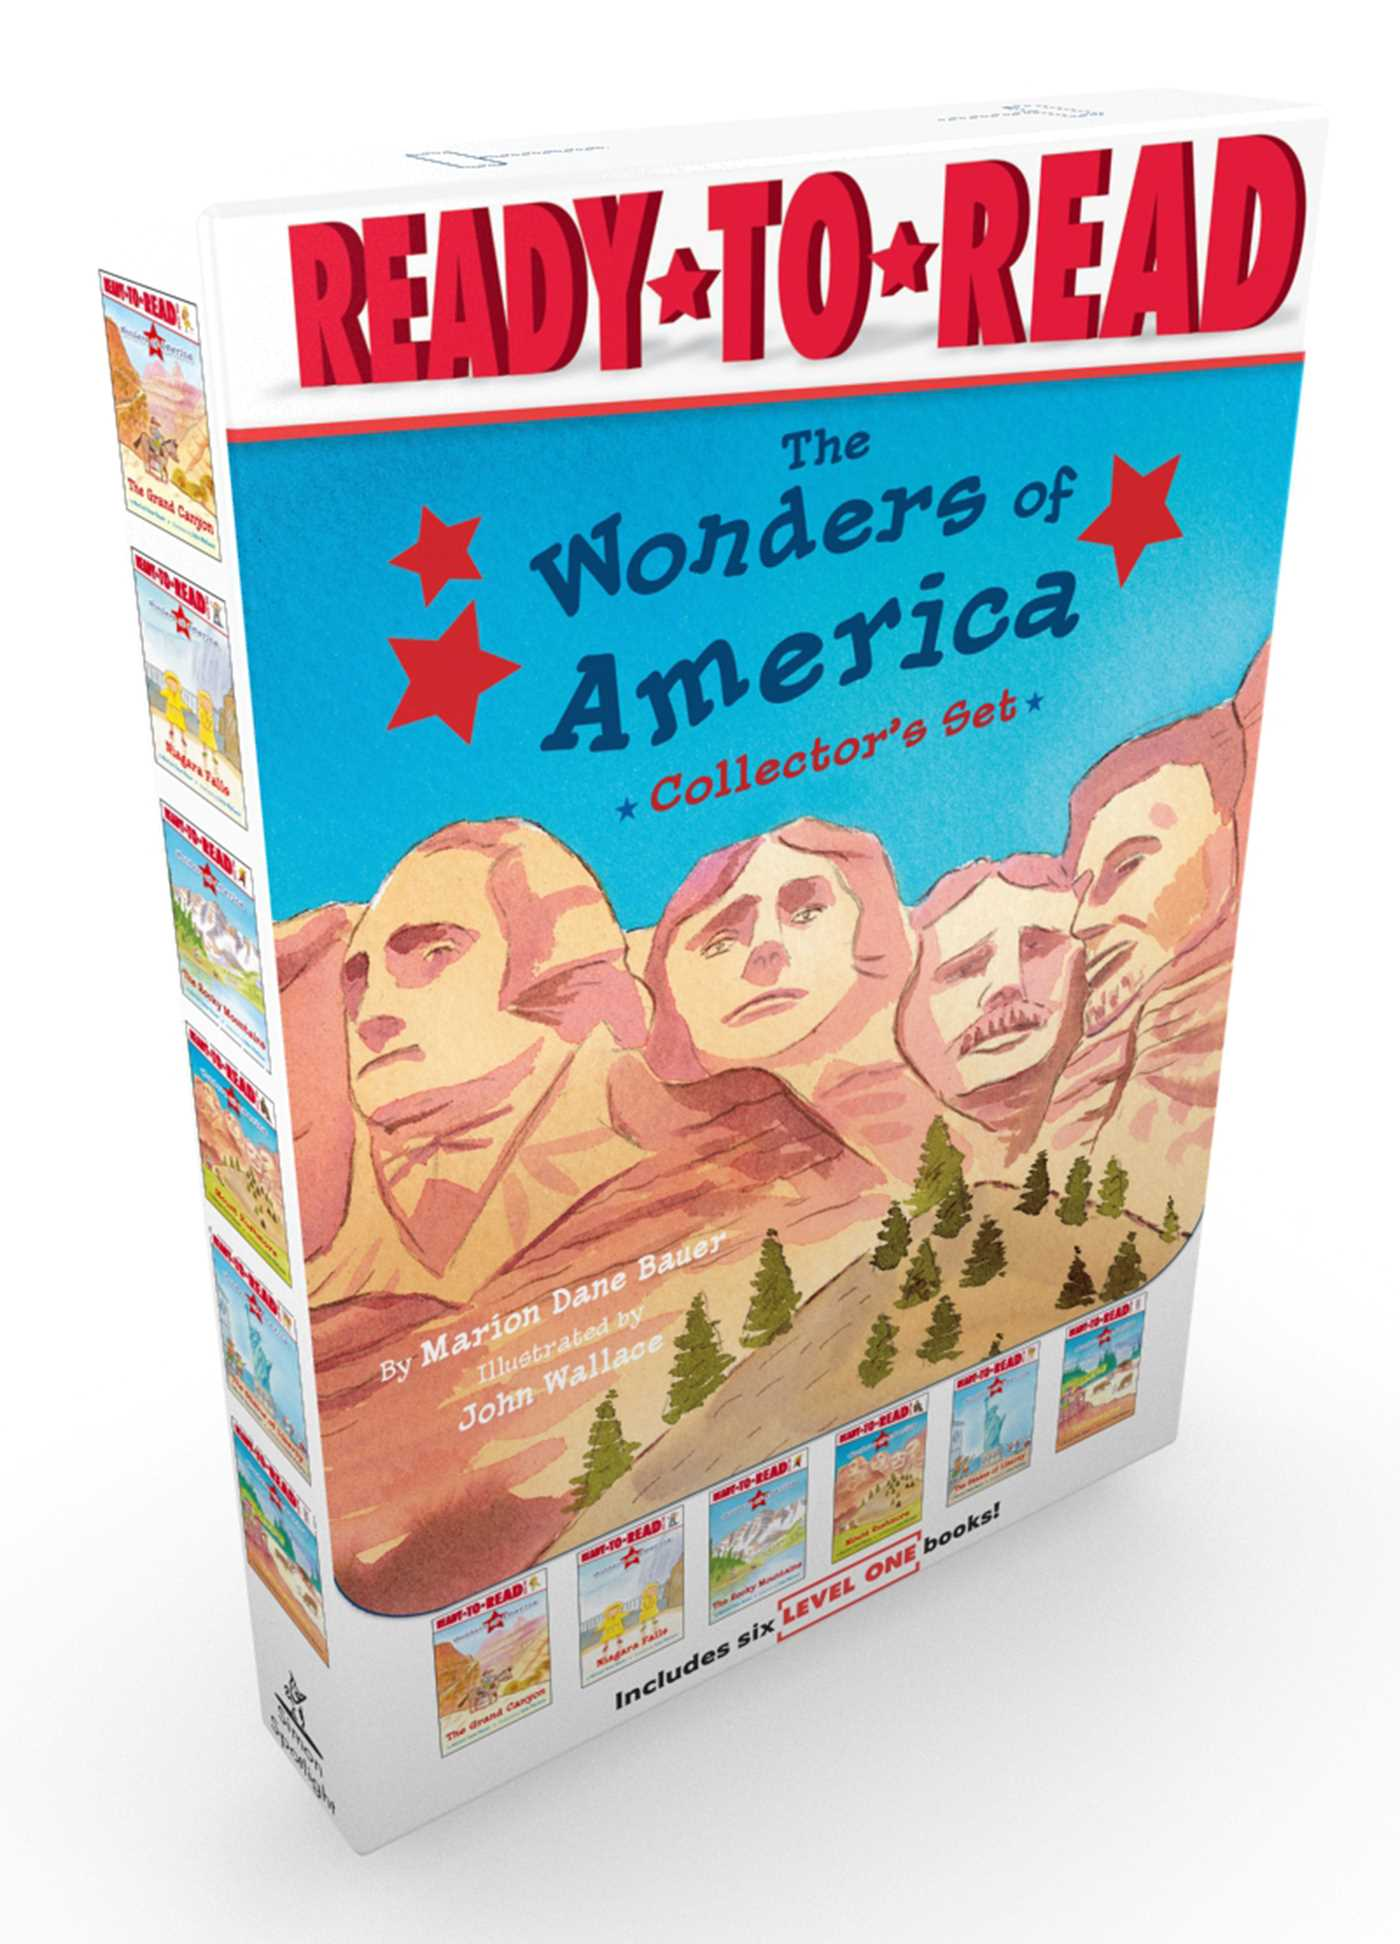 The wonders of america collectors set 9781481478878 hr